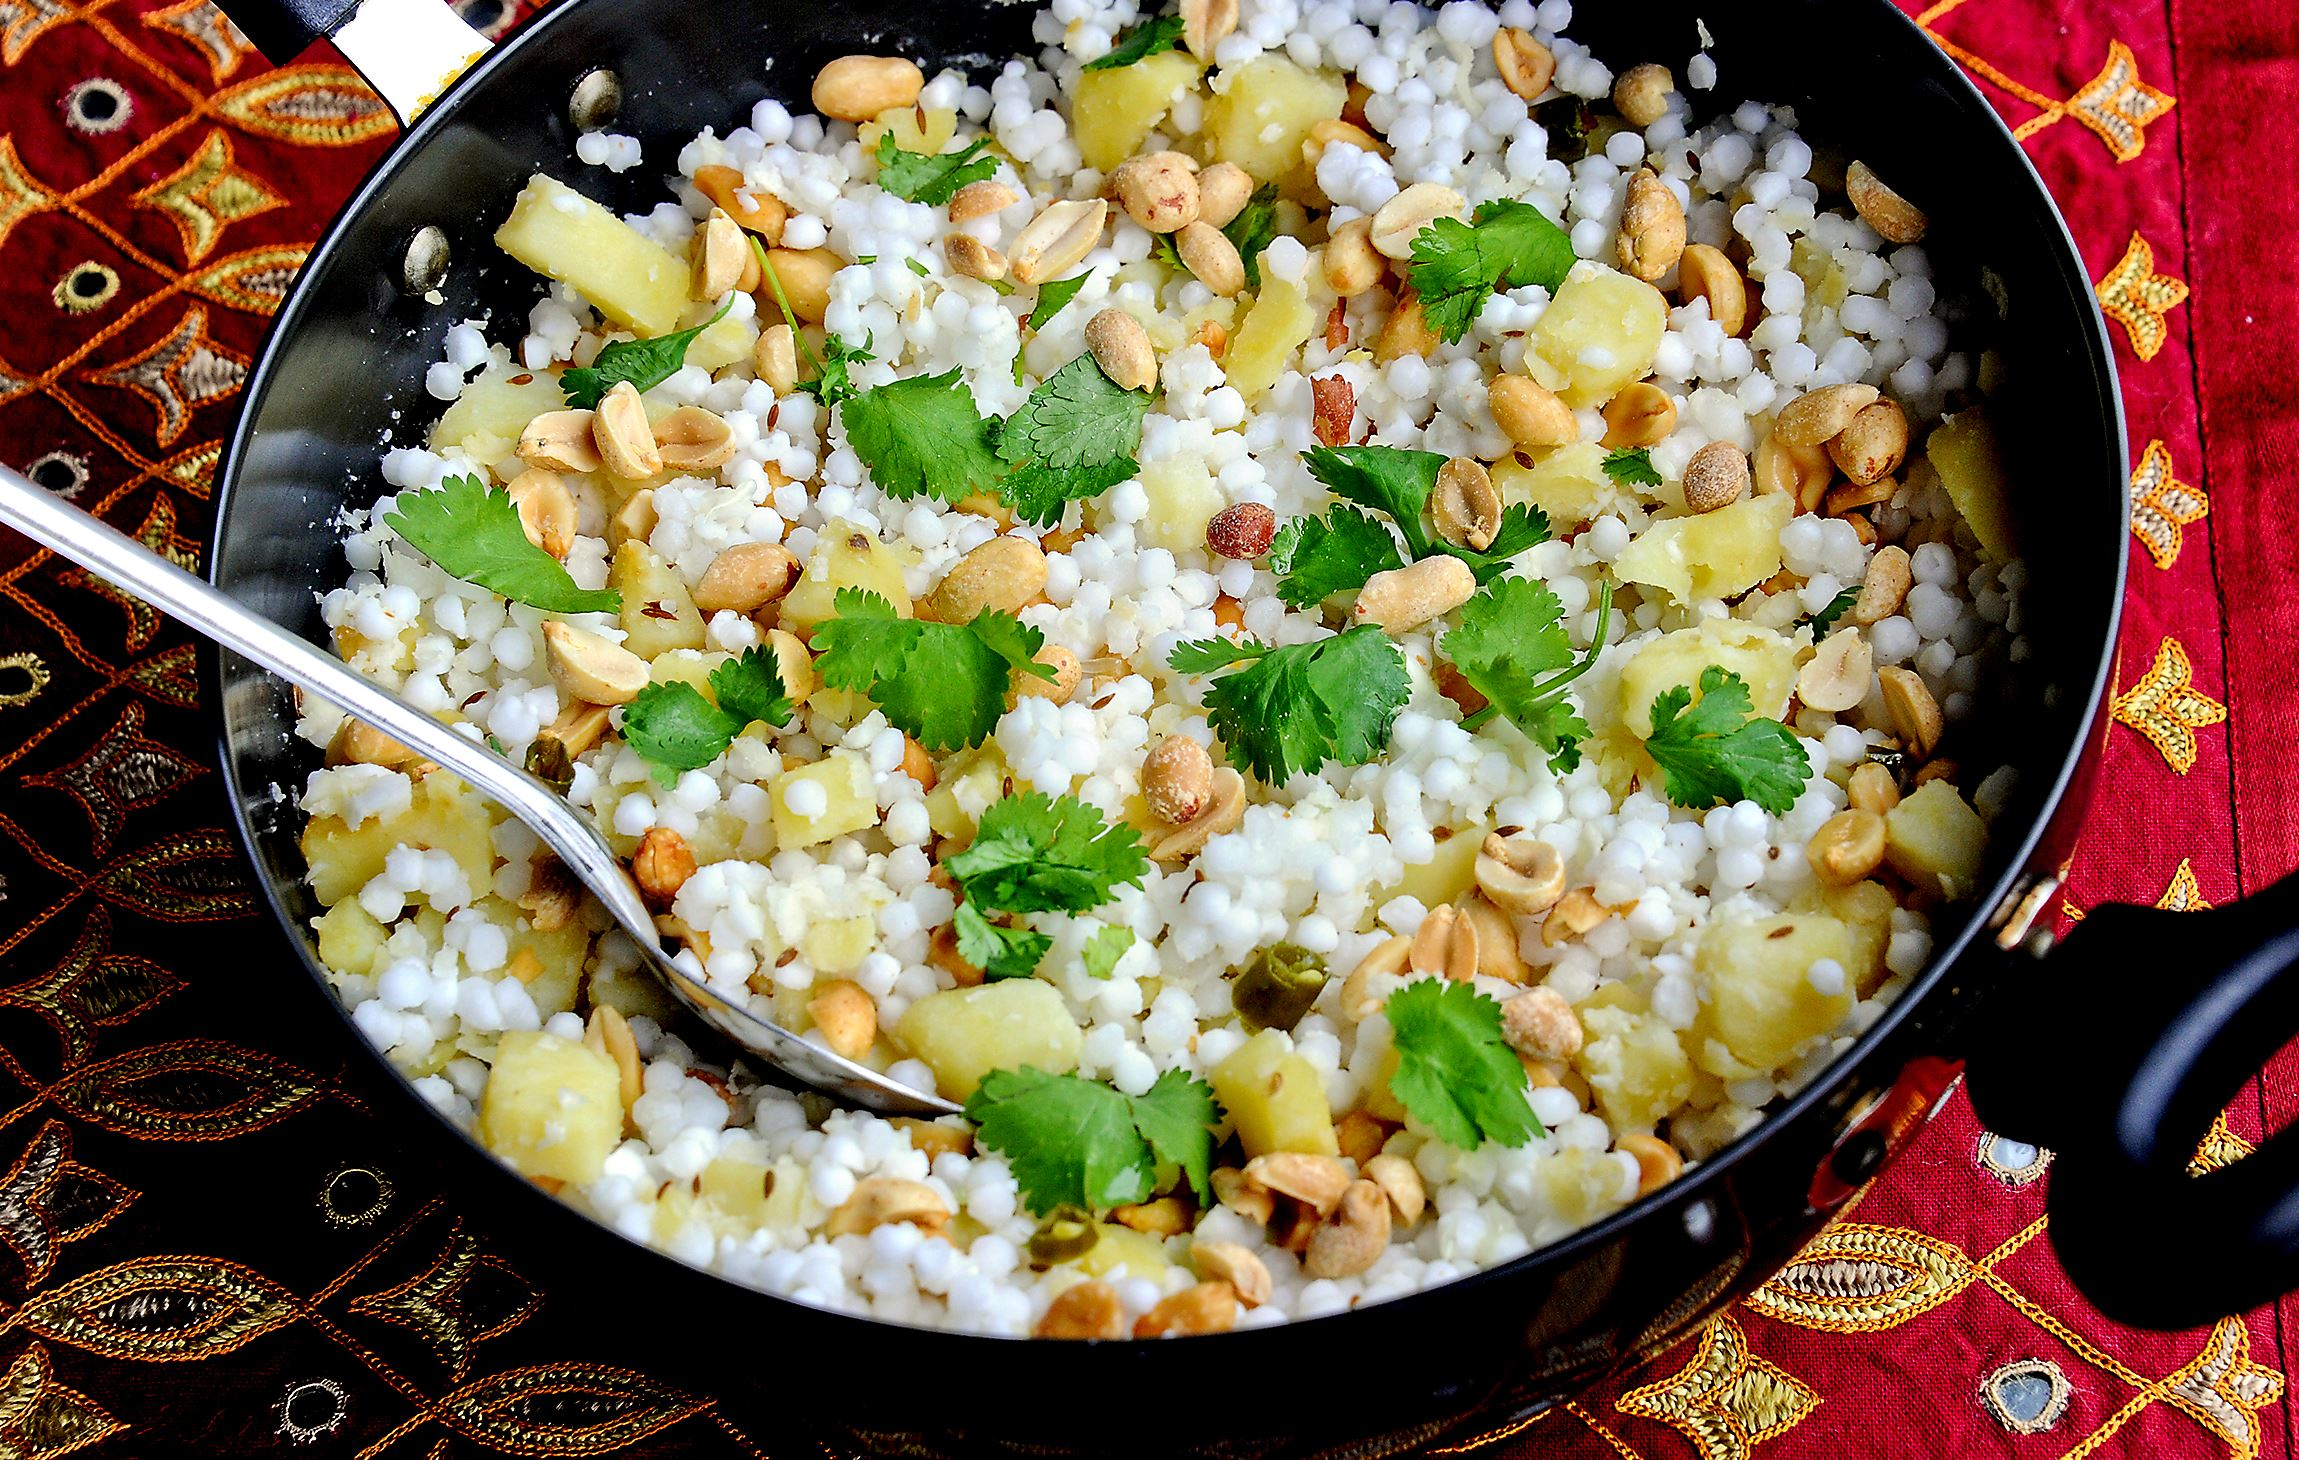 20170330lf-Lent02 Sabudana khichdi is made with tapioca pearls, cubed potatoes, peanuts, green chilies and lime juice, garnished with cilantro.